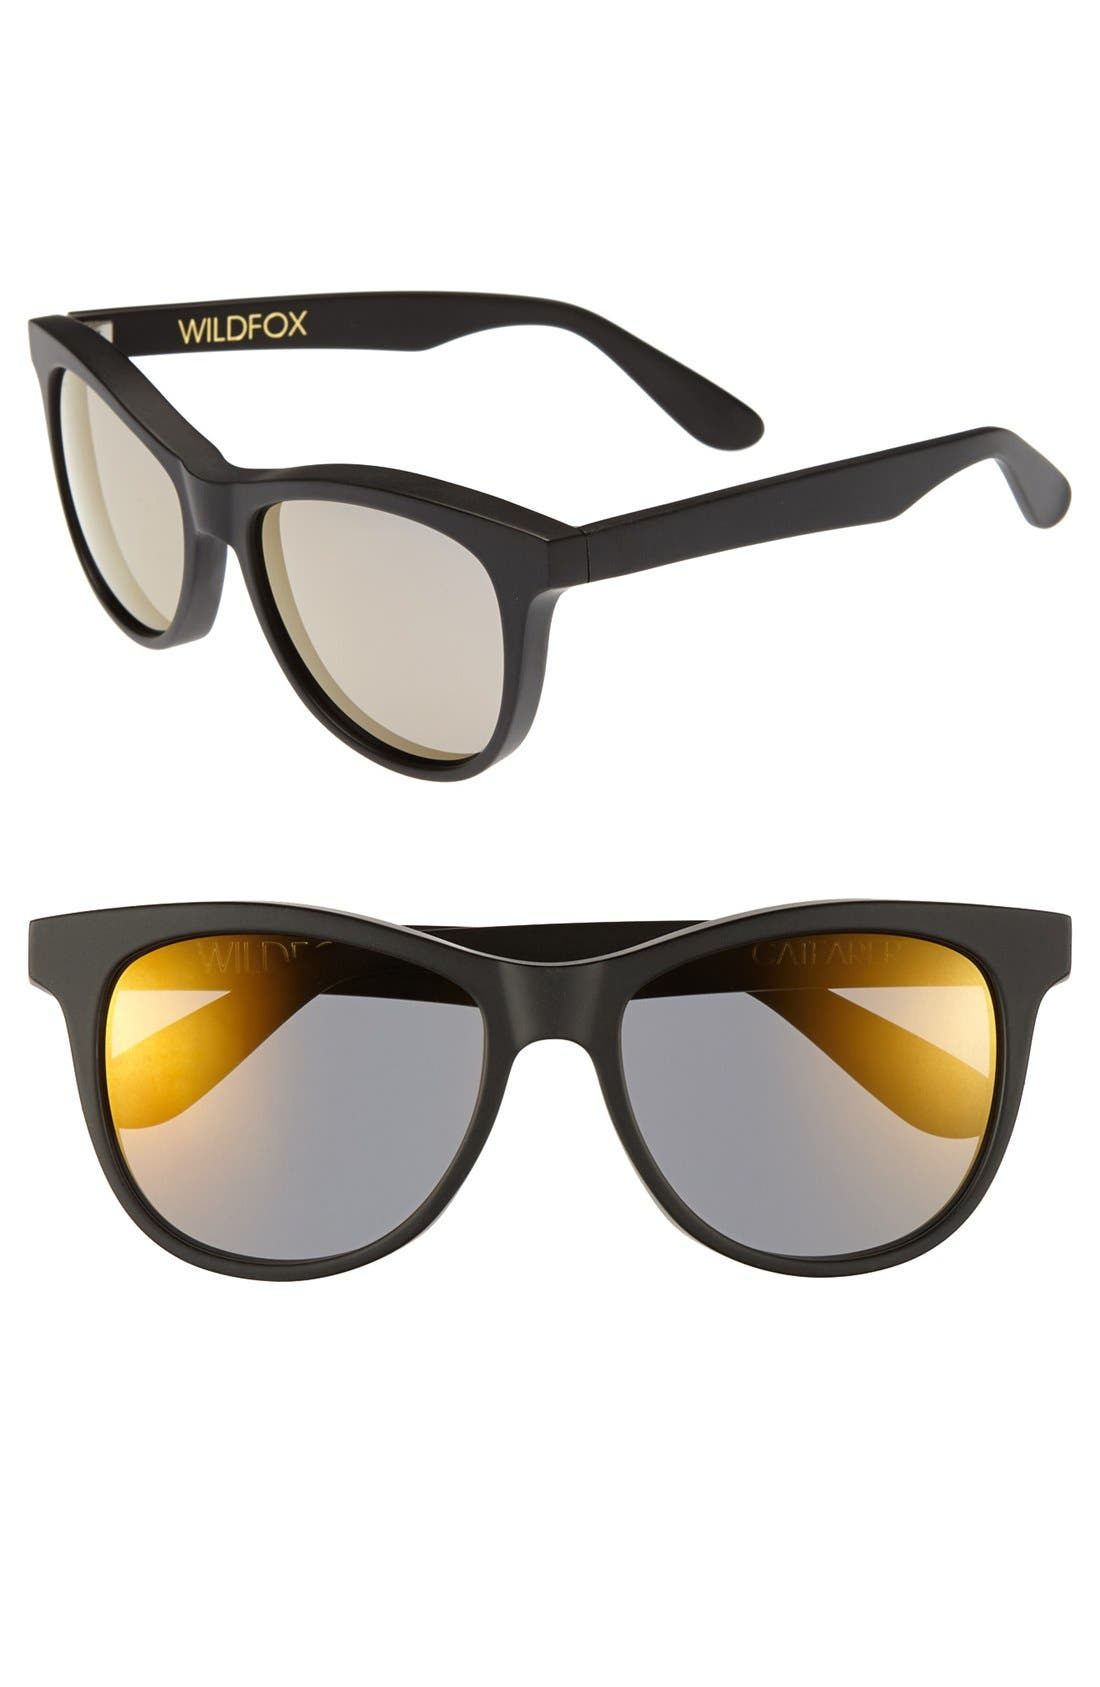 WILDFOX 'Catfarer Deluxe' 53mm Sunglasses, Main, color, 001